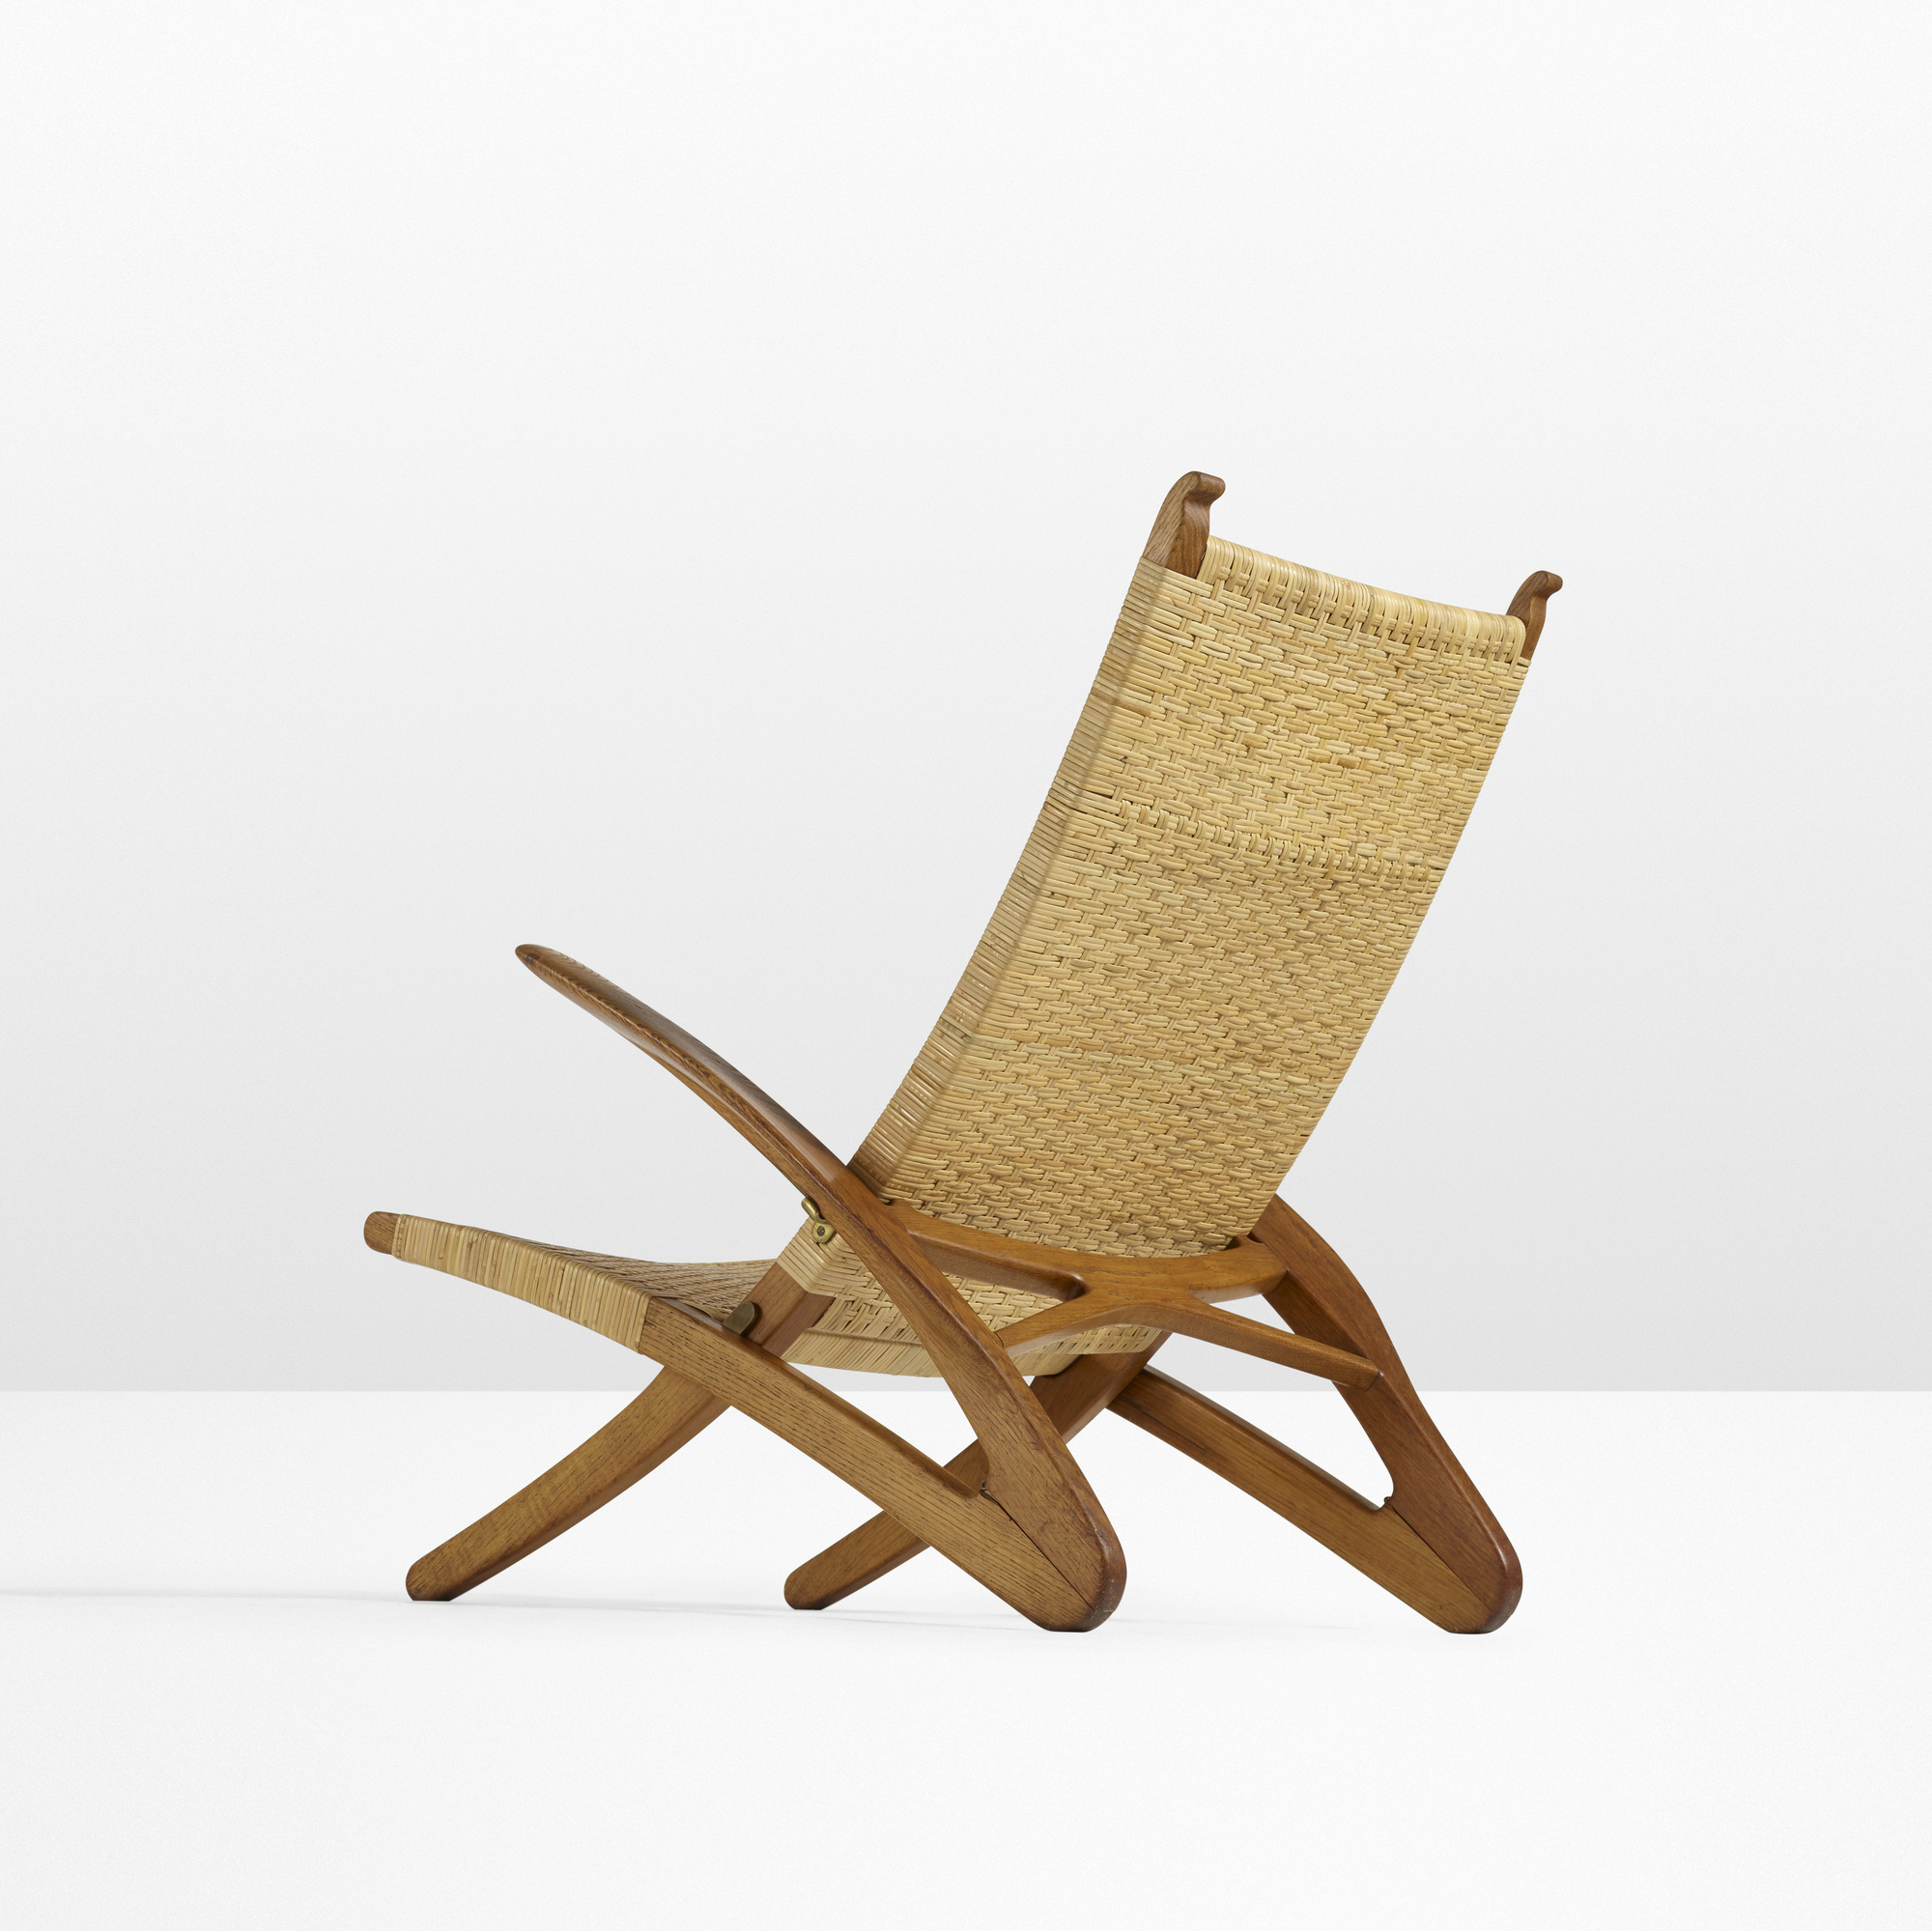 23: Hans J. Wegner / Rare Dolphin lounge chair (1 of 5)